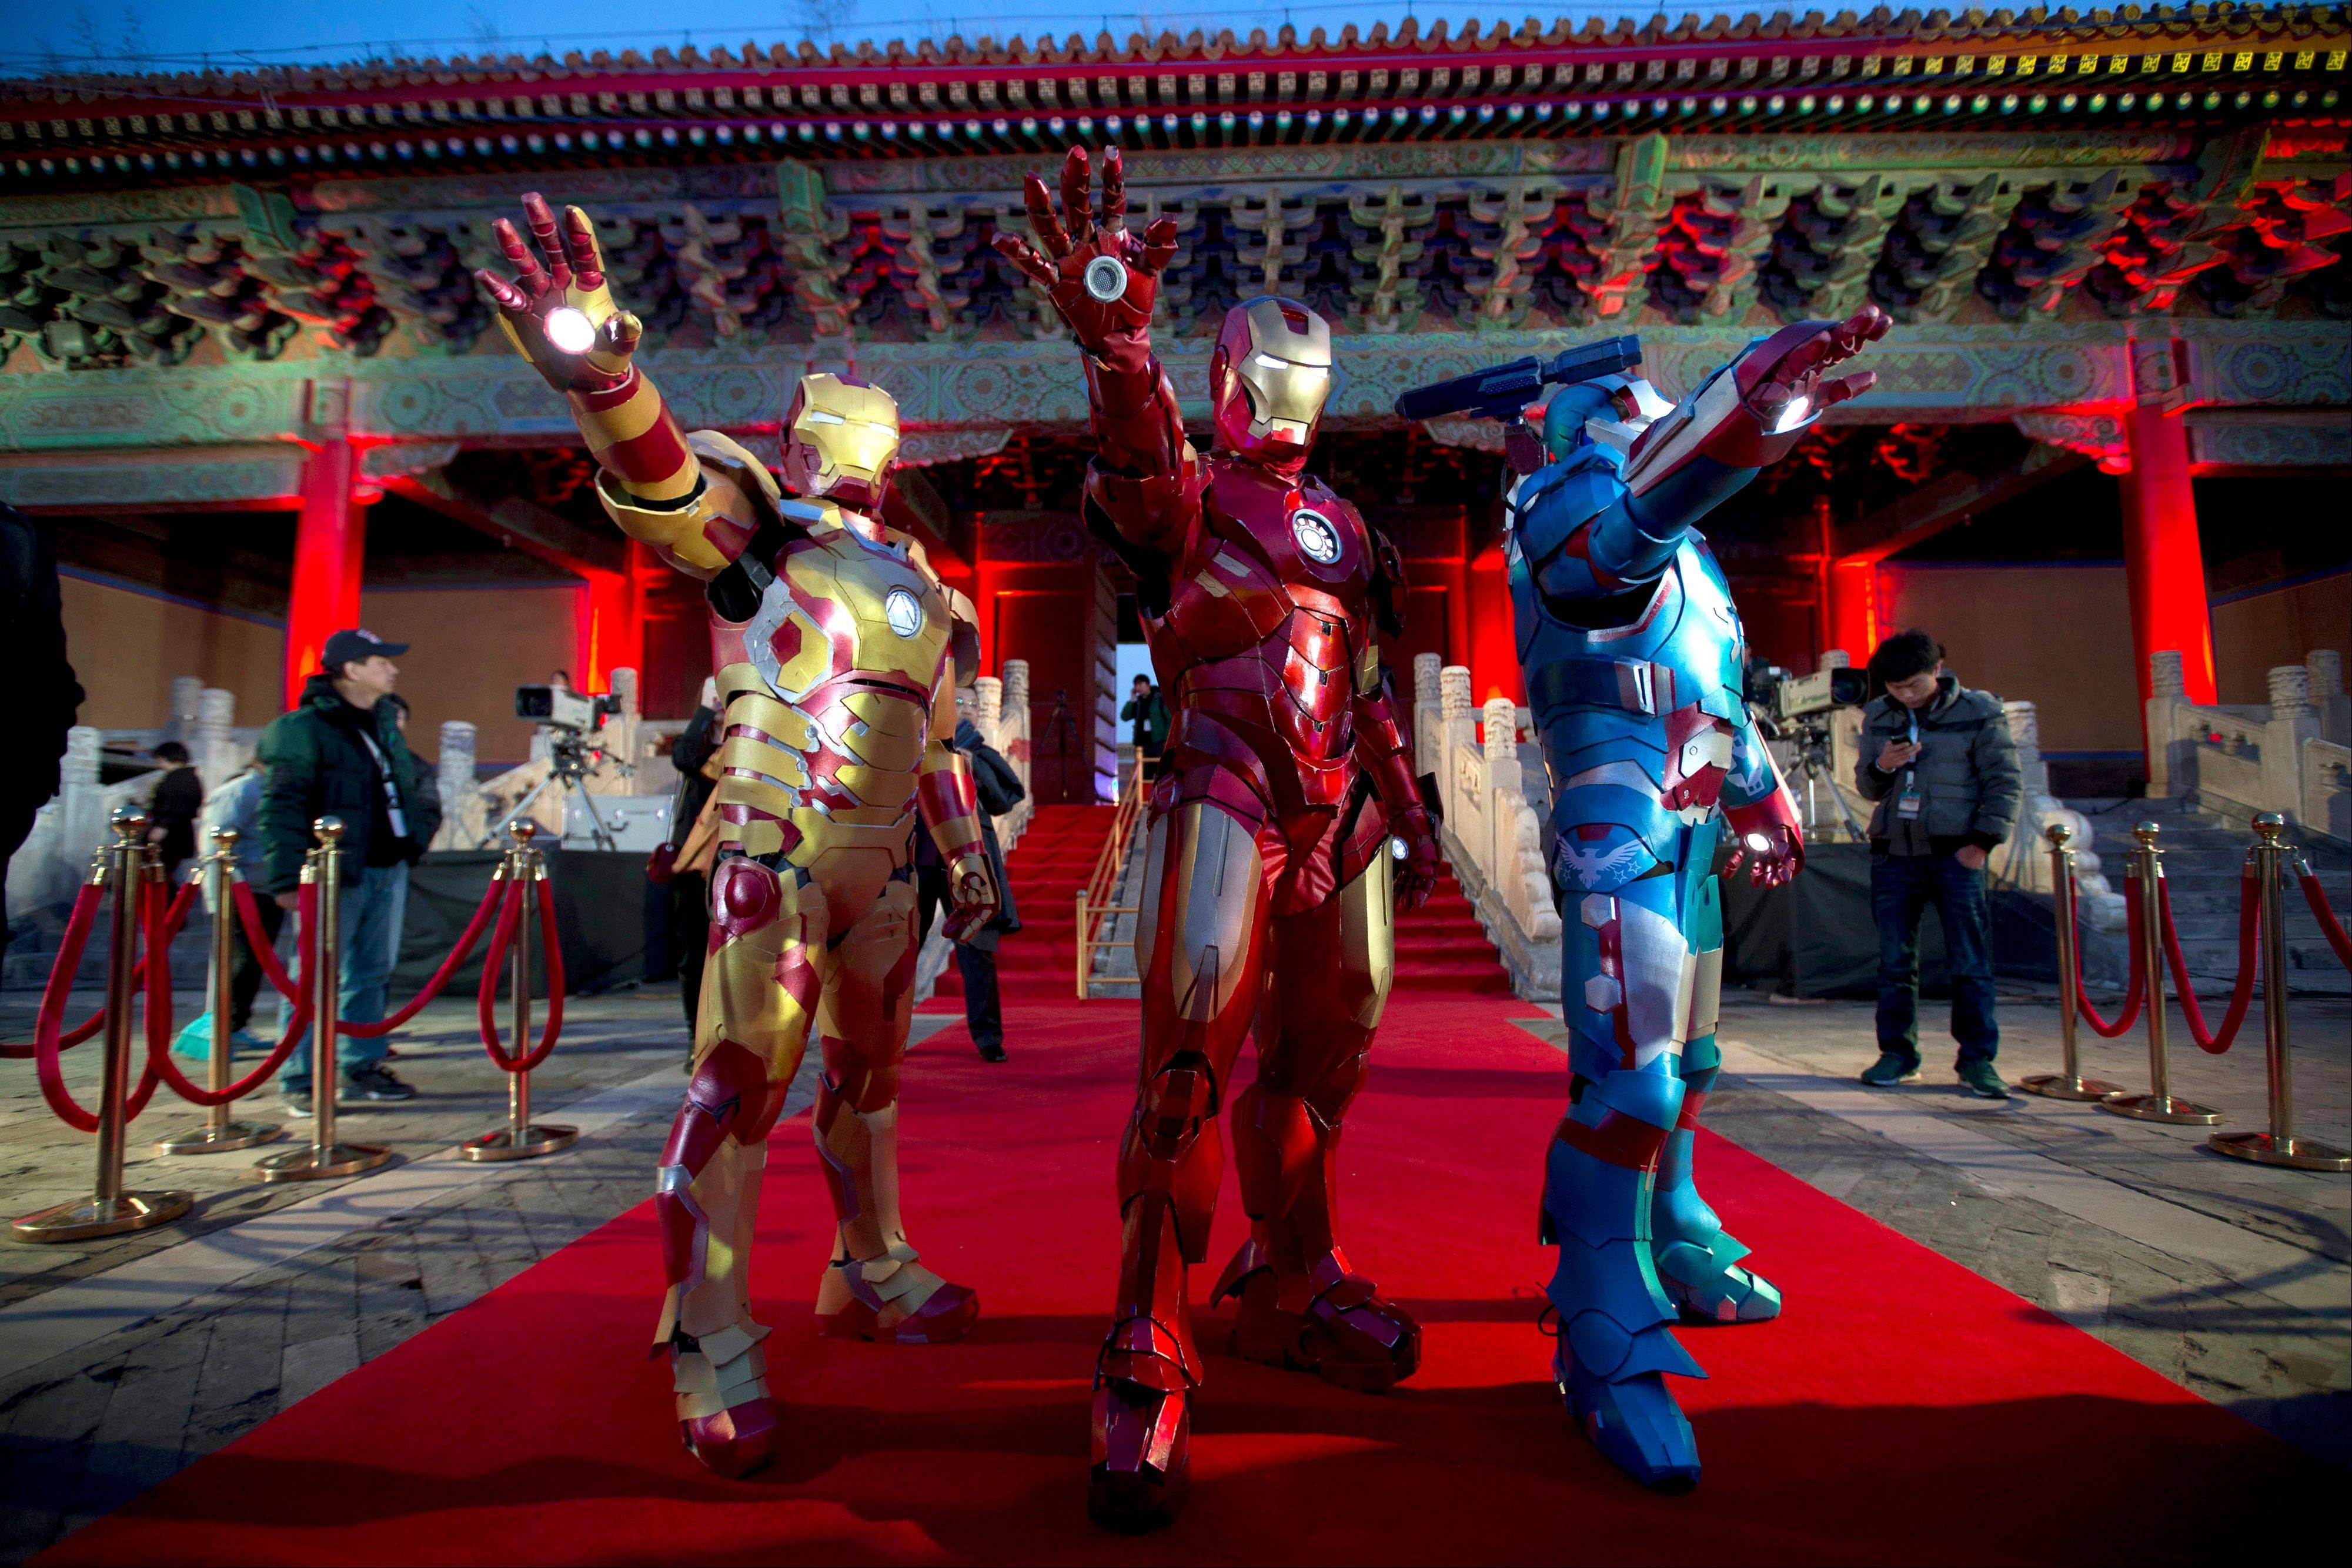 In this Saturday, April 6, 2013 file photo, Chinese performers dressed as Iron Man pose for photos during a promotional event for the movie �Iron Man 3� before its release in China in early May at the Imperial Ancestral Temple in Beijing�s Forbidden City. Hong Kong Disneyland is adding an Iron Man-themed area in the hopes that the Marvel superhero�s success at the Chinese box office will help draw more visitors to the underachieving resort. The park said Tuesday, Oct. 8 that the Iron Man Experience is planned to open by late 2016.